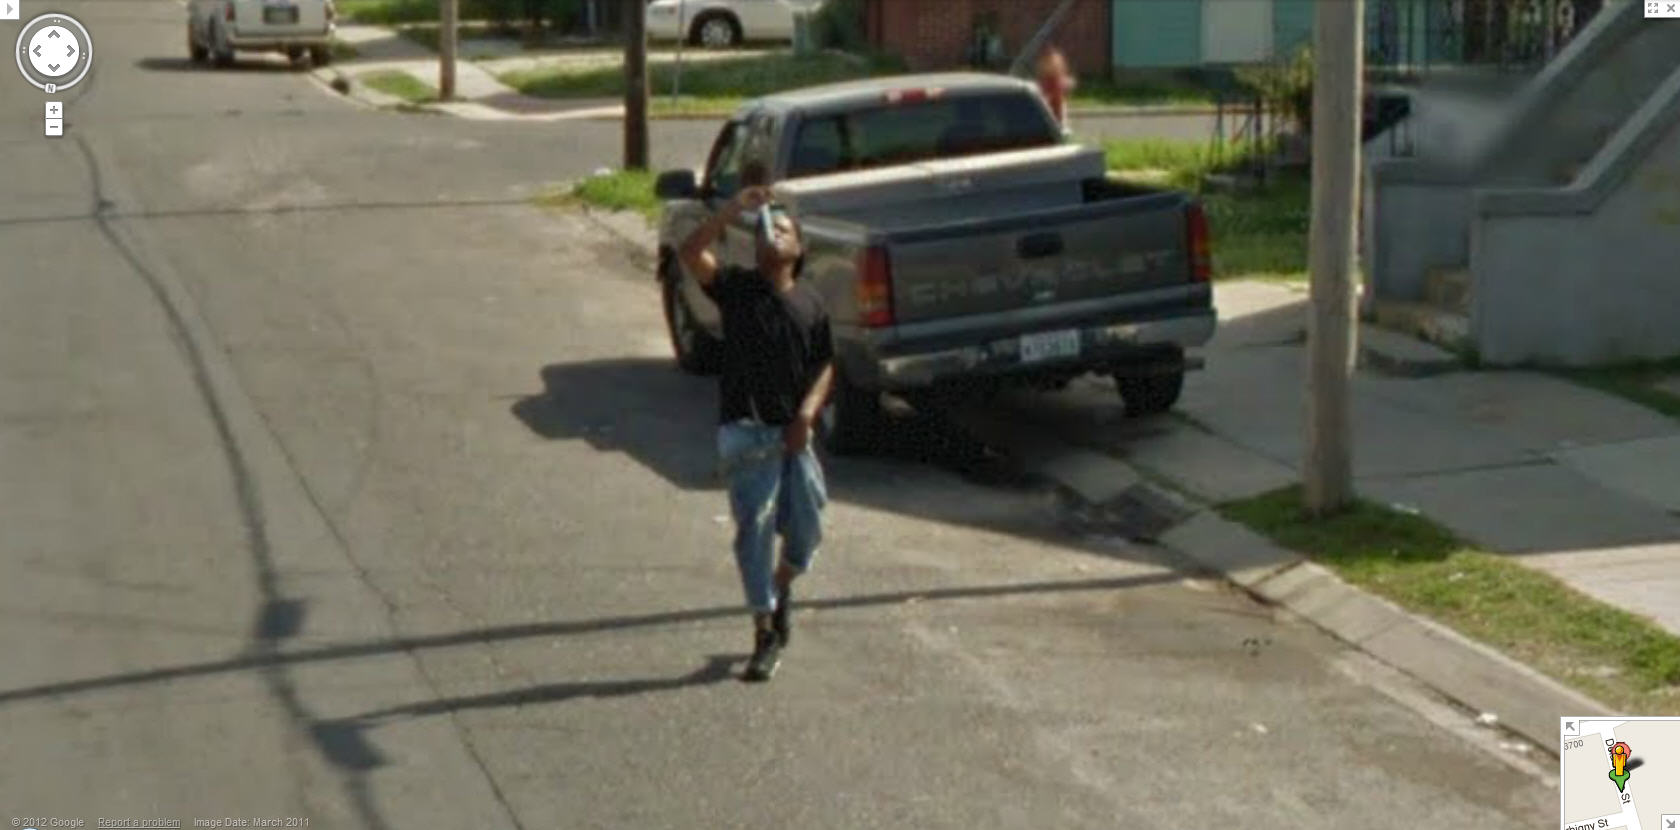 google-street-view-captures-a-talented-young-man-in-new-orleans--